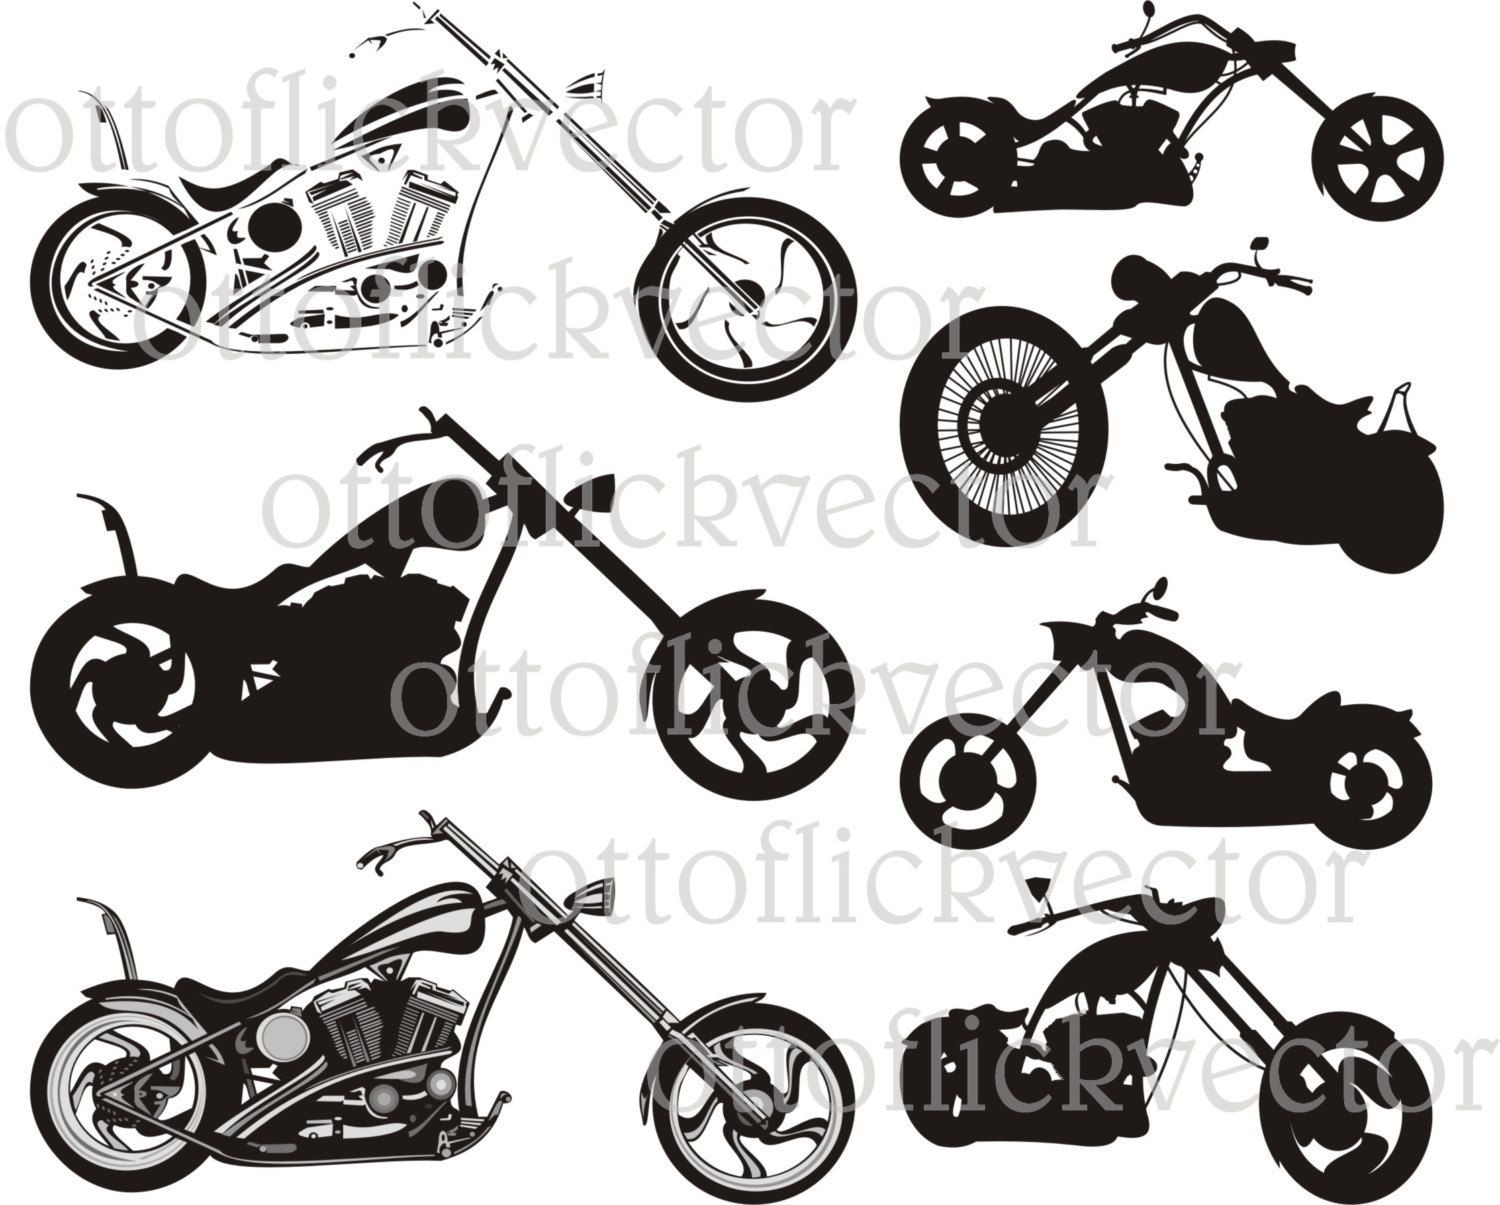 Chopper Motorcycle Vector Clipart Eps Cdr Ai